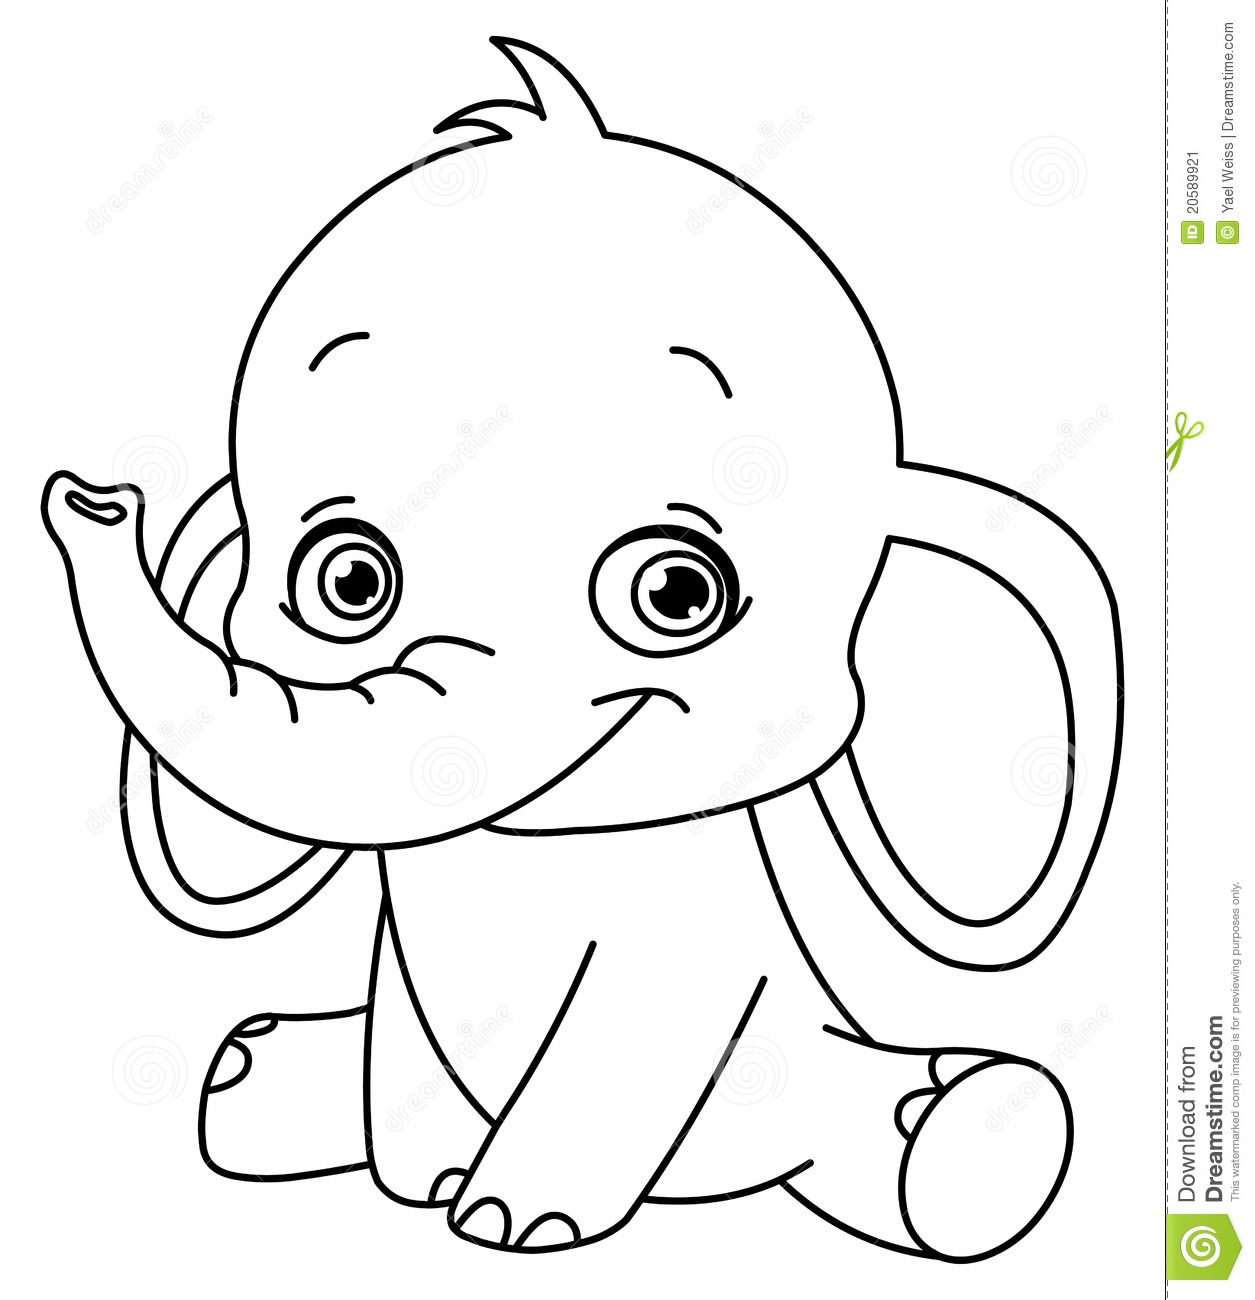 baby elephant coloring pages print - photo#2